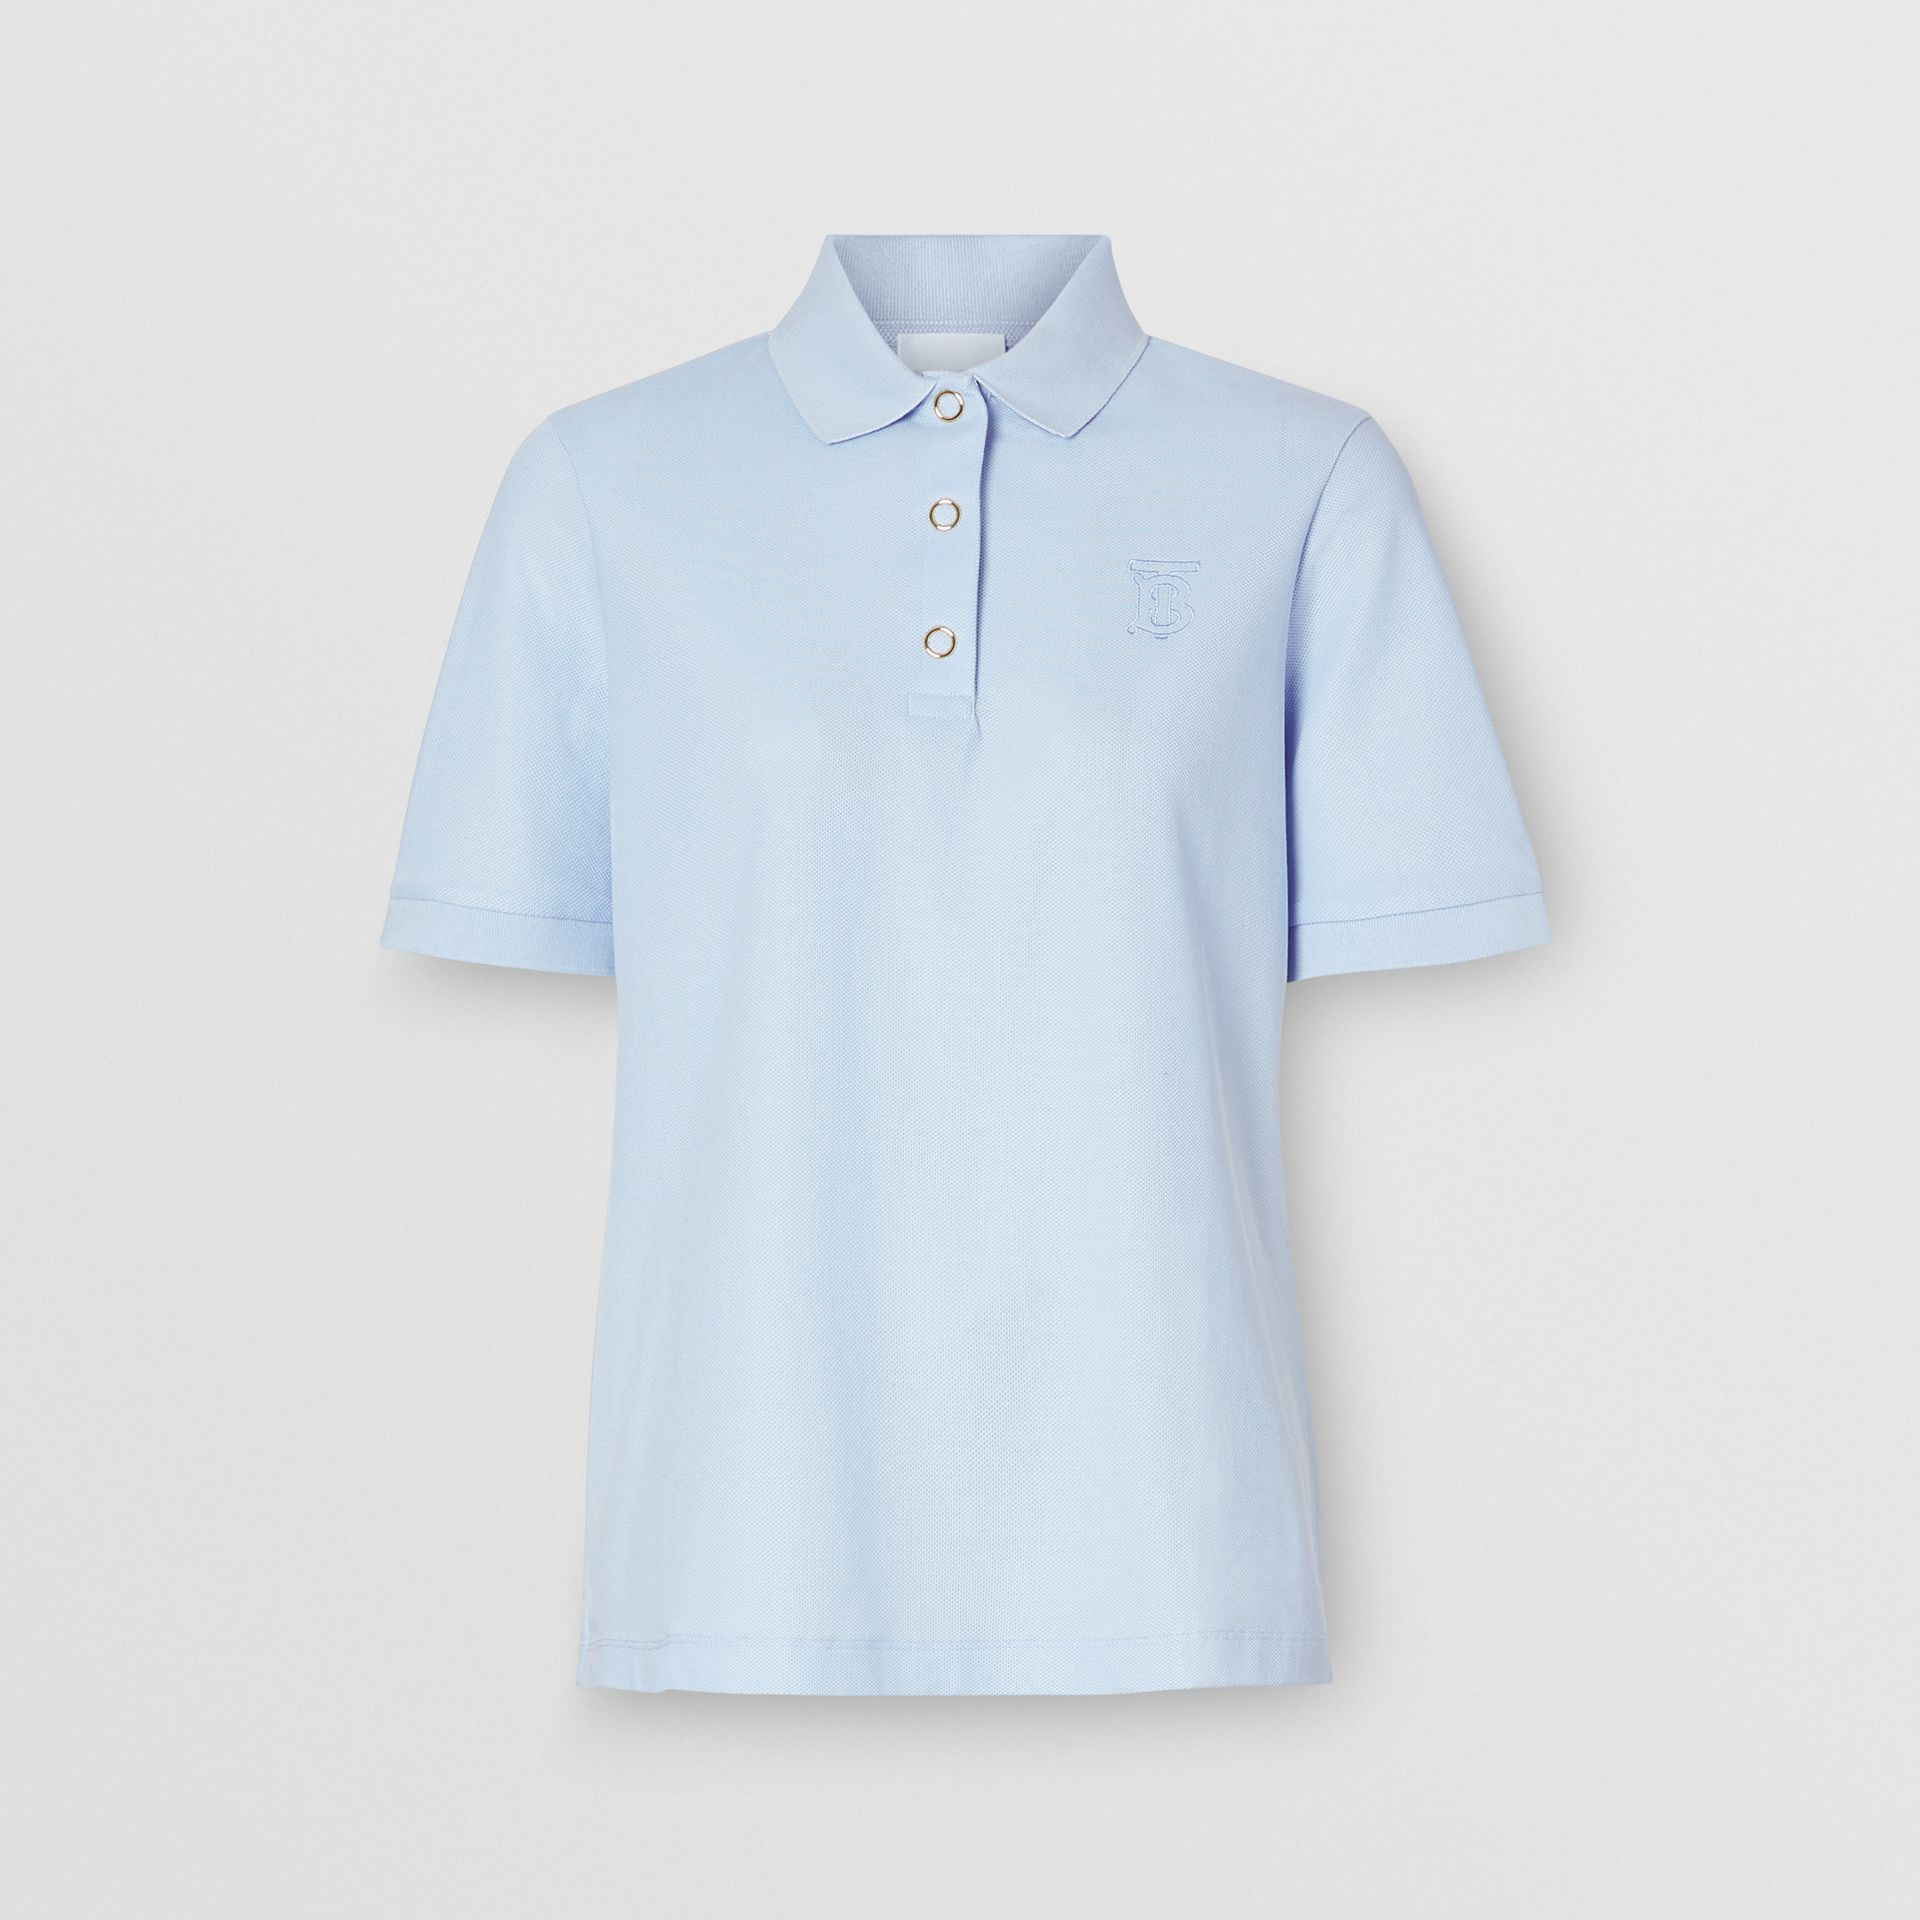 Monogram Motif Cotton Piqué Polo Shirt in Pale Blue - Women | Burberry United Kingdom - gallery image 3